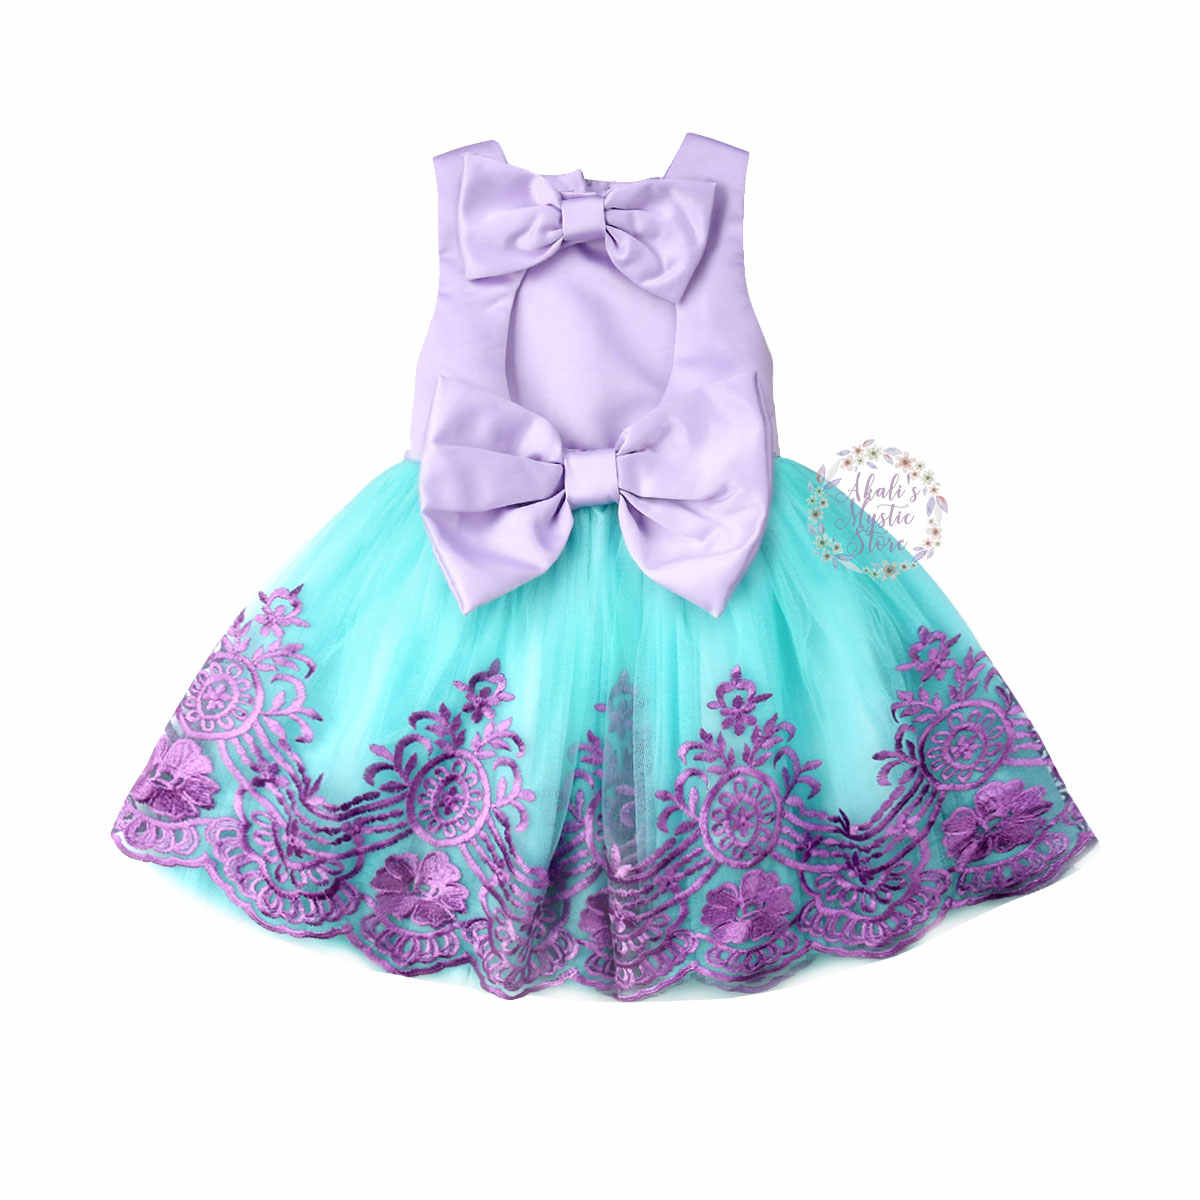 6M-5Years Toddler Newborn Baby Kids Girls Dress Lace Bowknot  Tulle Birthday Formal Wedding Party Dresses For Baby Girl Costumes